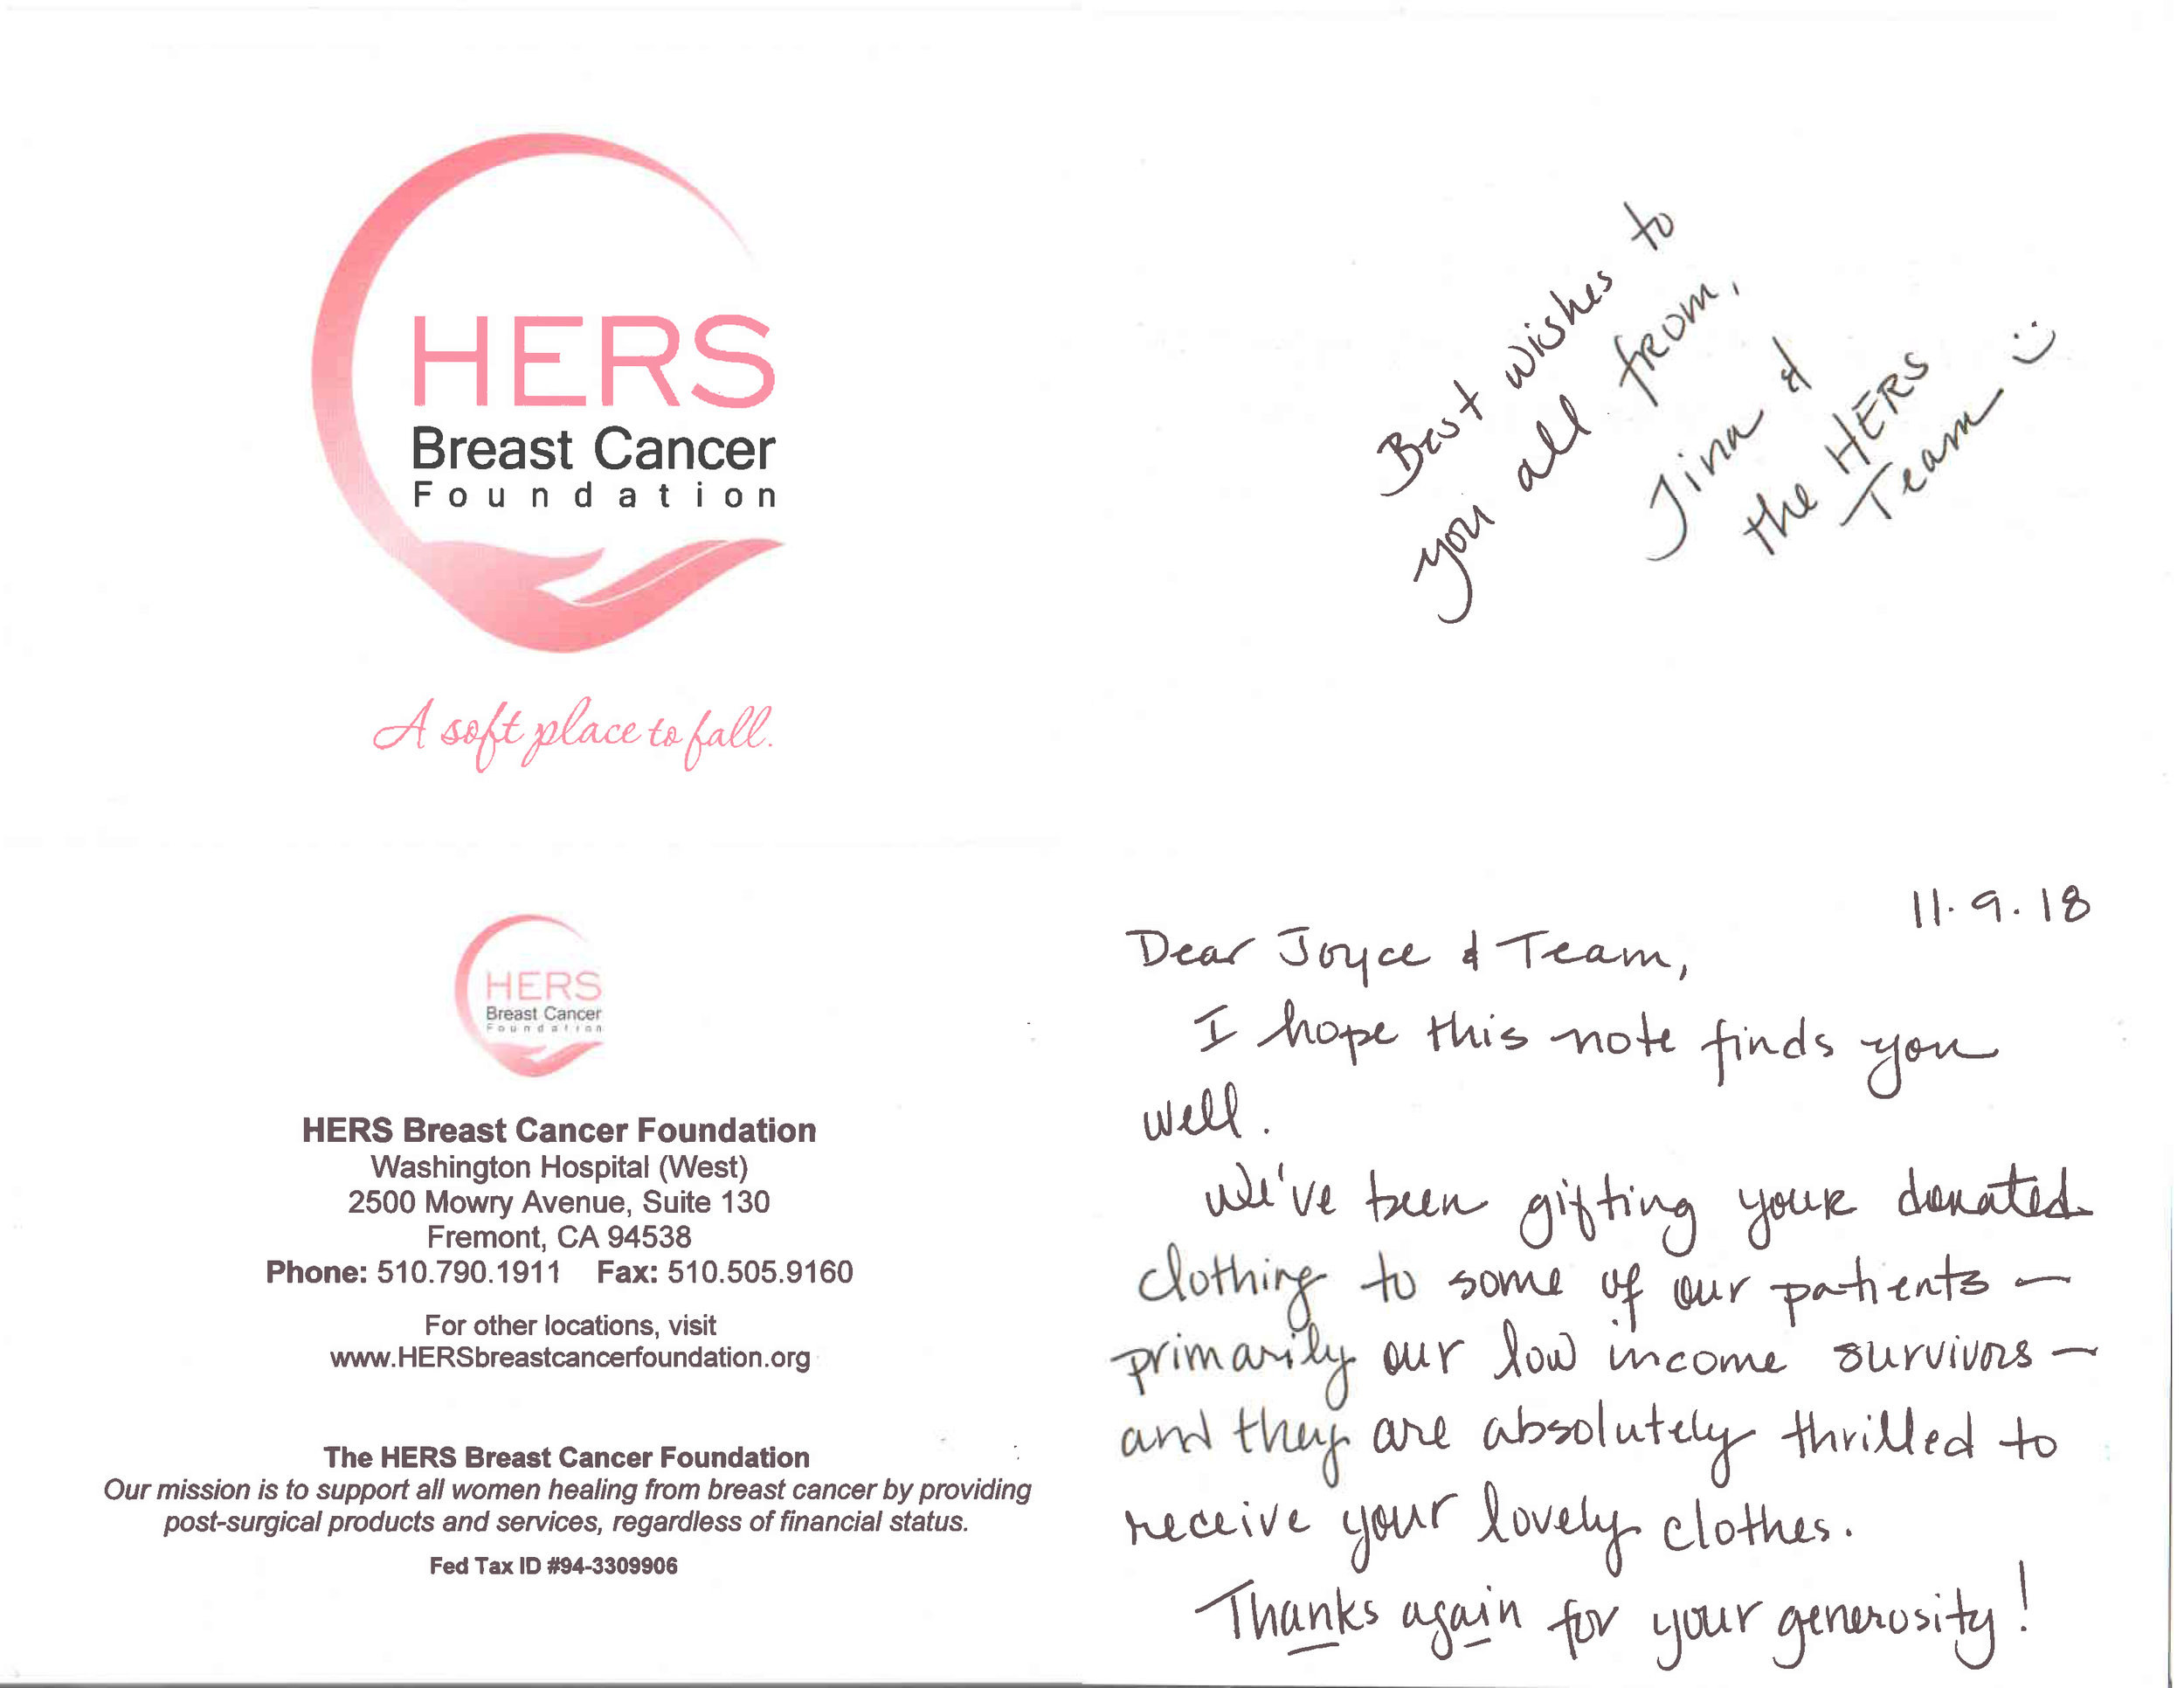 Thank You Letter from HERS 11.9.18.jpg